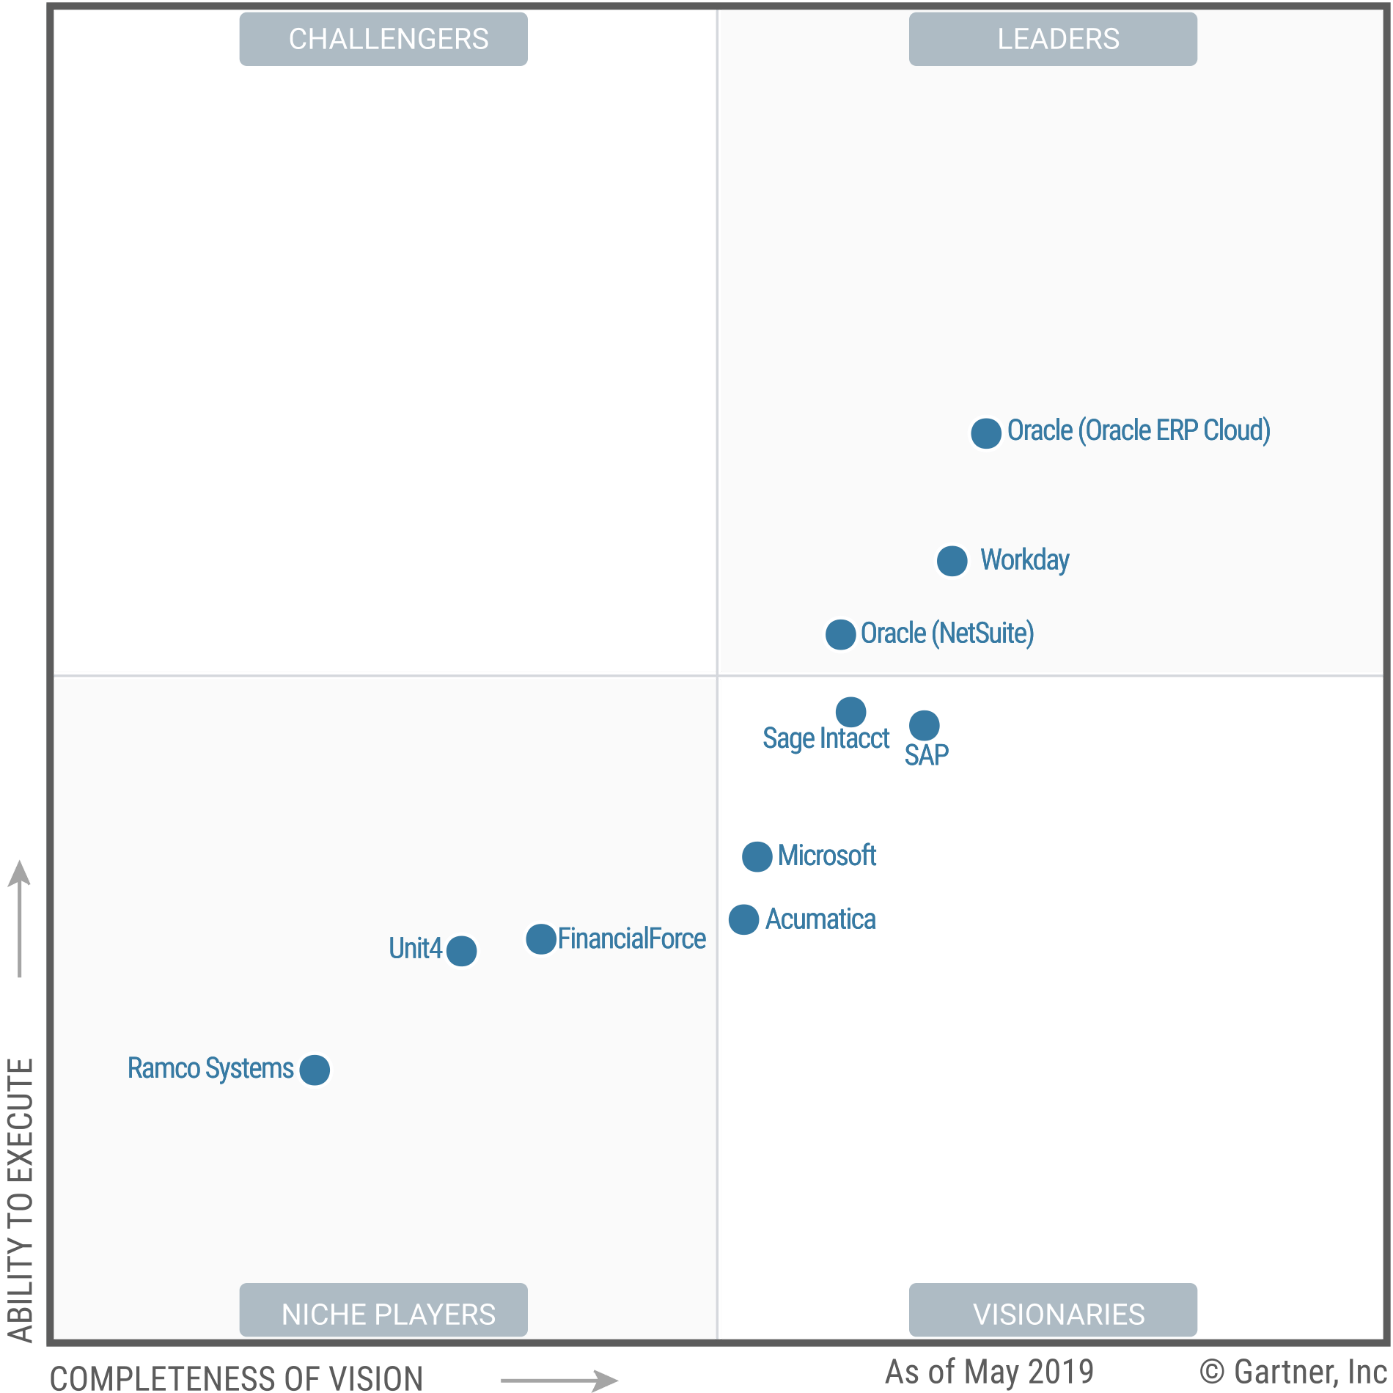 Gartner and NetSuite